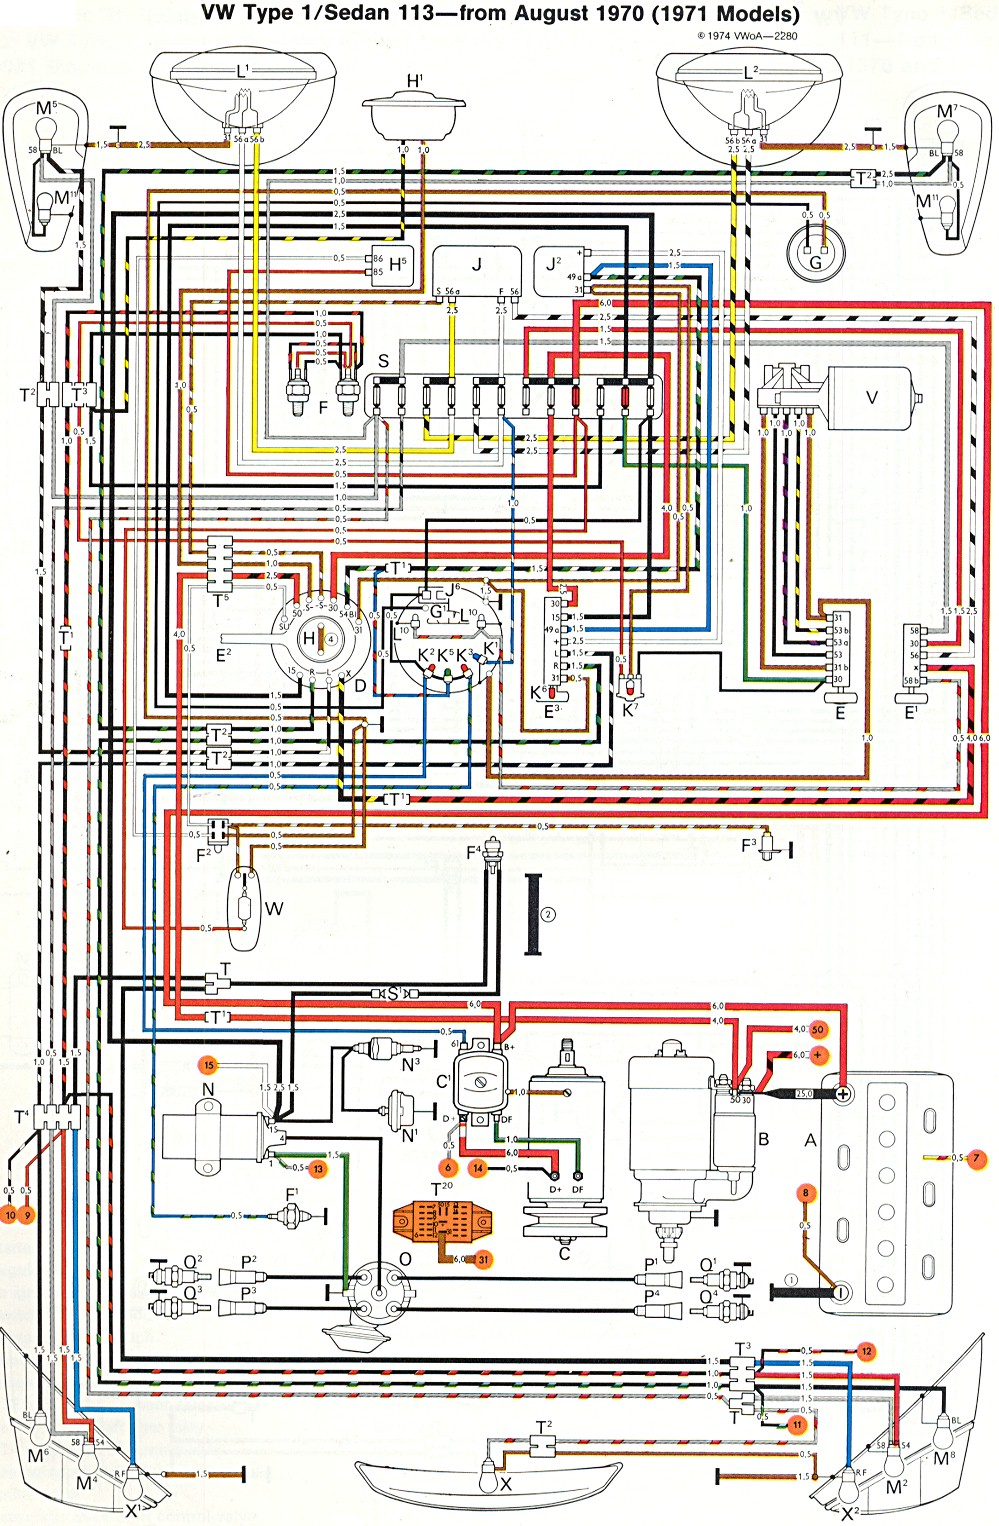 98 Vw Beetle Fuse Diagram Custom Project Wiring Volkswagen Jetta 1971 Super Thegoldenbug Com 1998 Radio